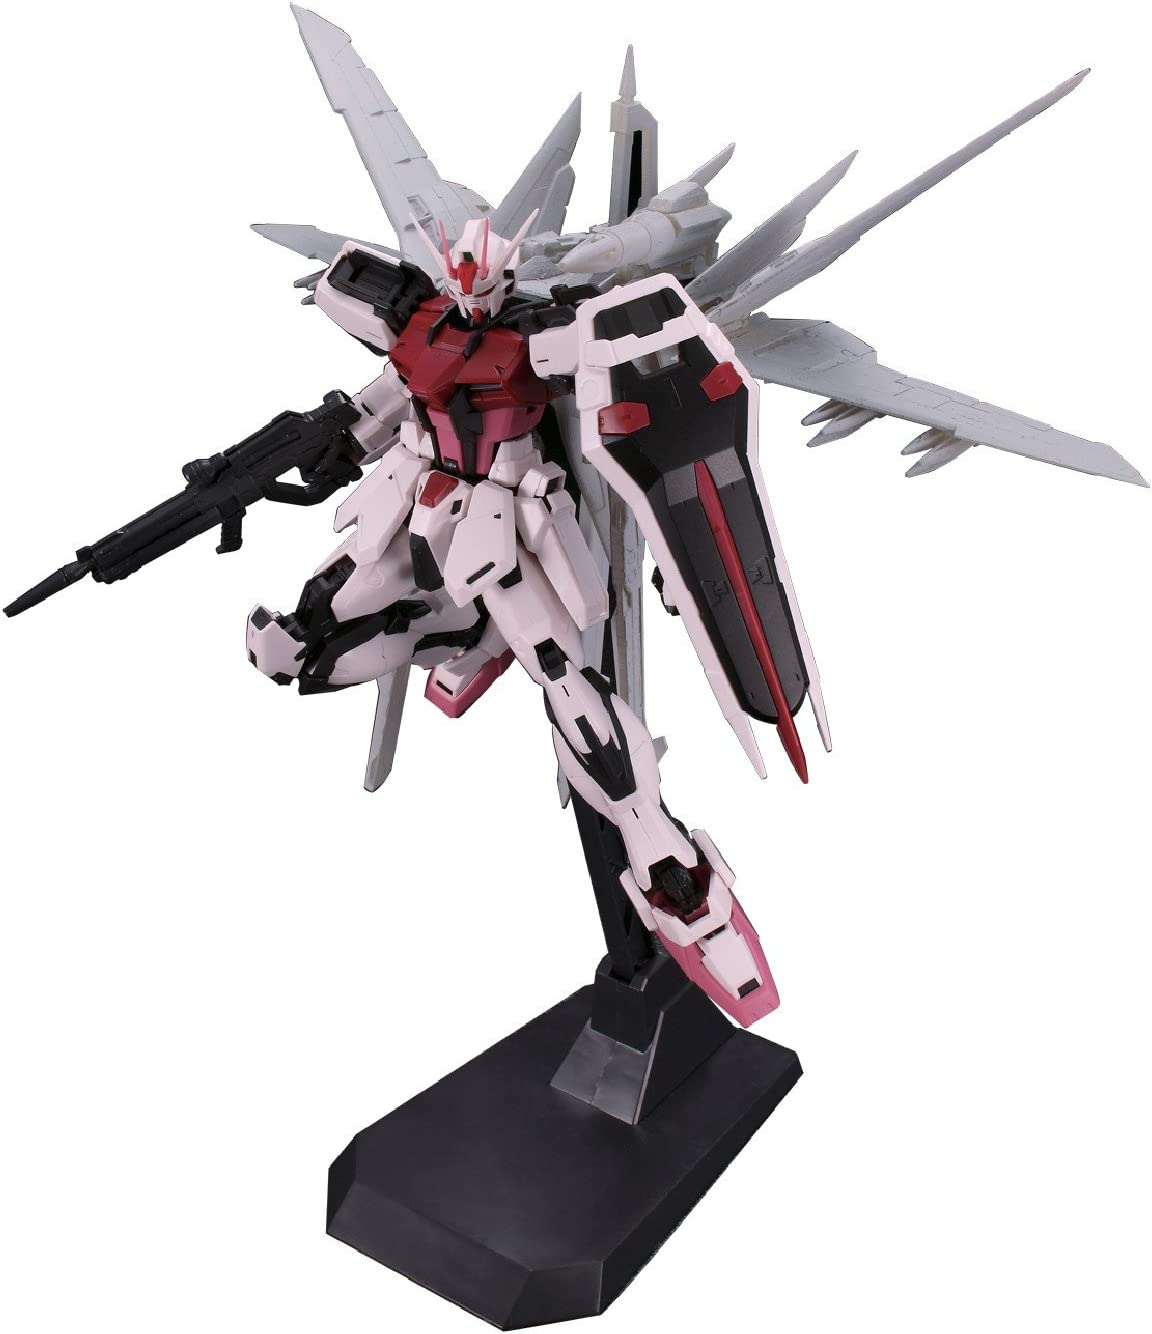 Bandai Hobby Max 69% OFF Outlet SALE MG Strike Rouge Ootori Ver. RM Action Scale 1 100 F